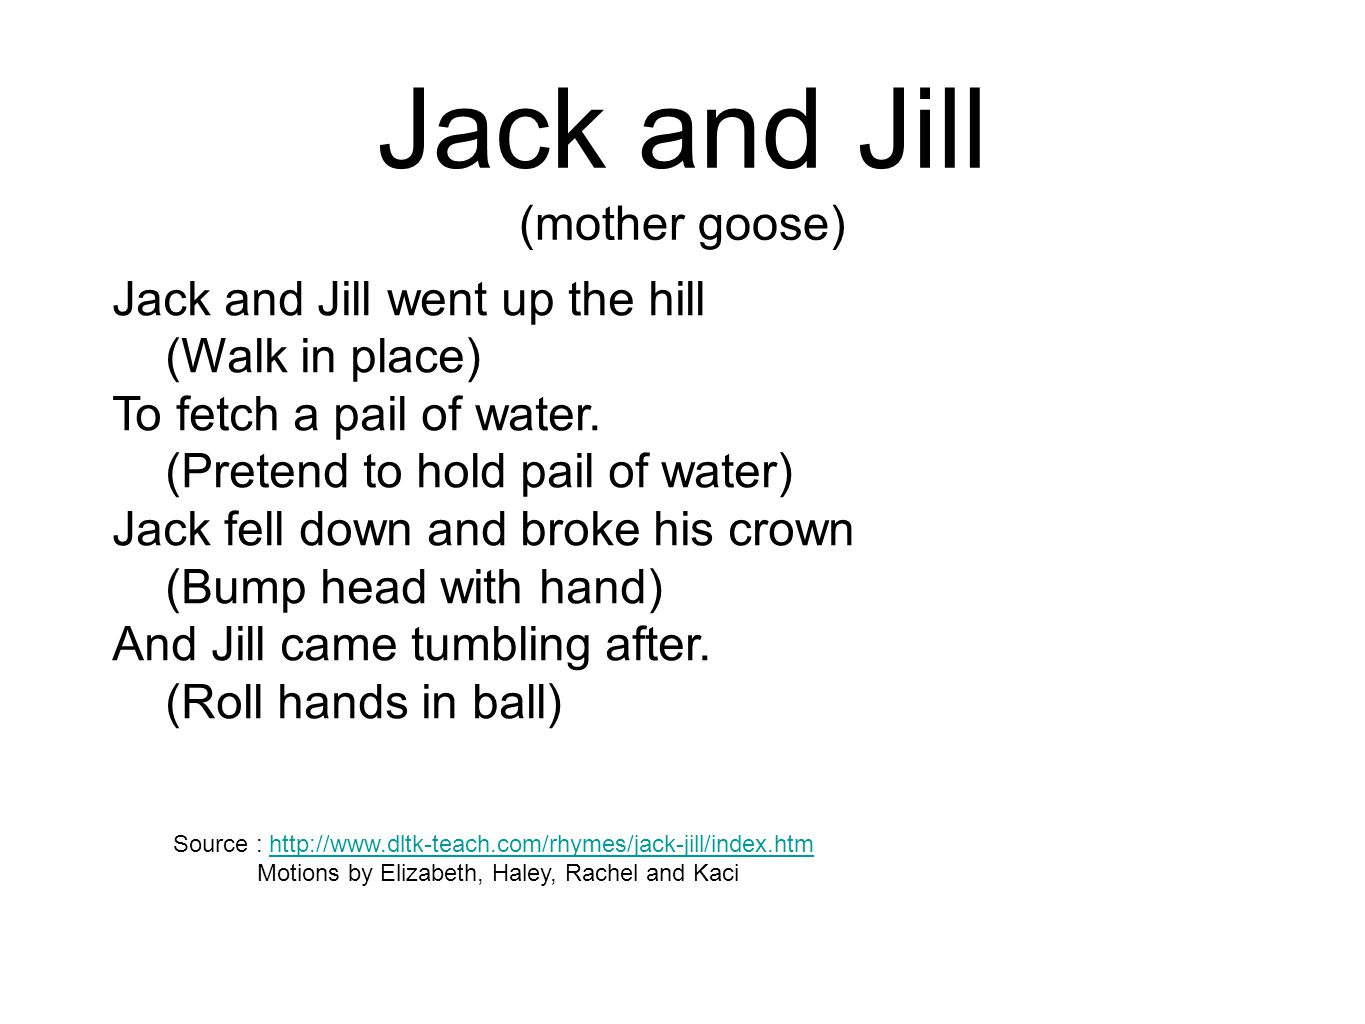 Jack and Jill (mother goose)